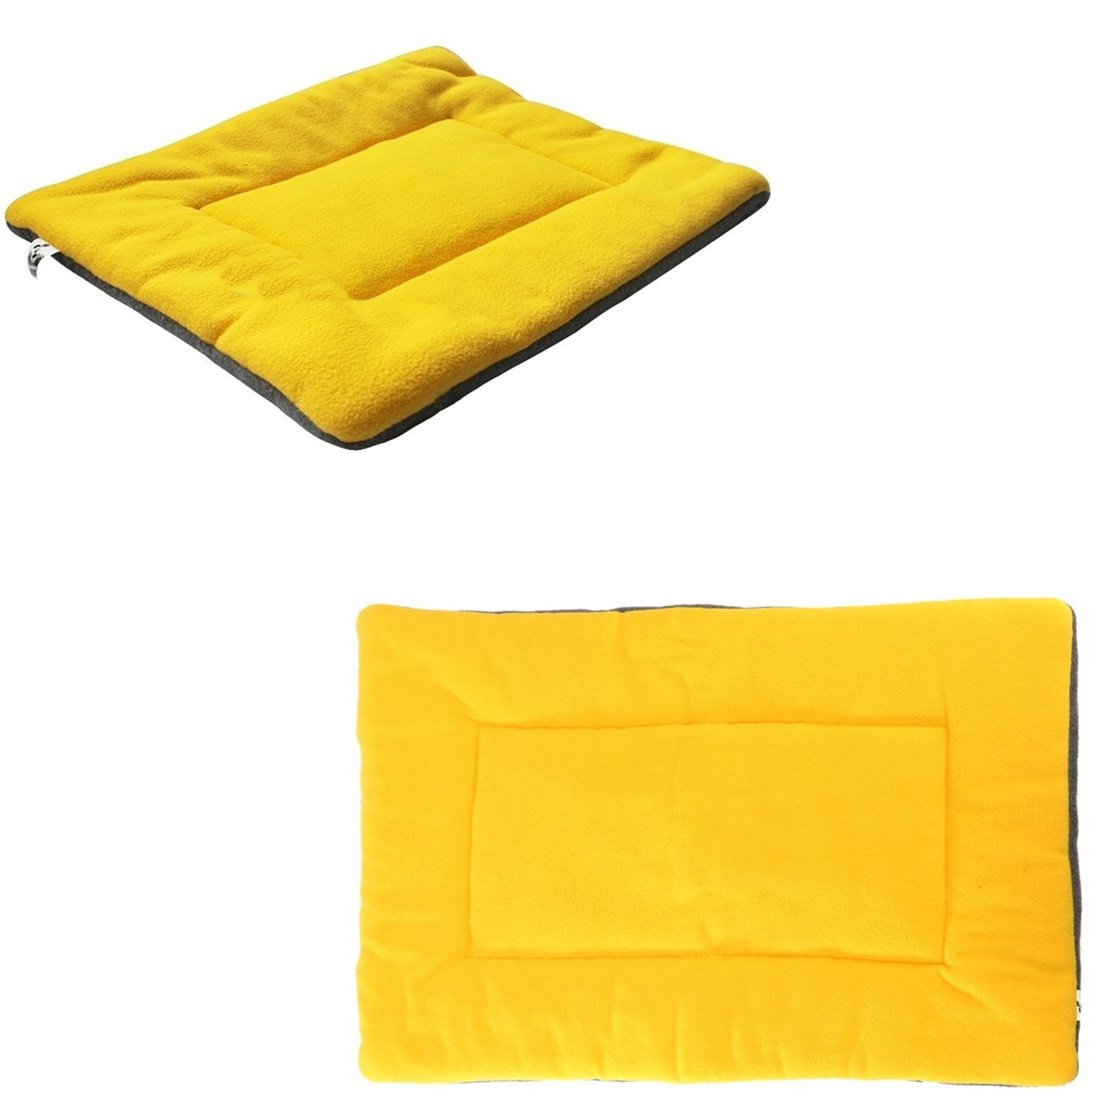 1Pcs First-class Popular Pet Bed Sleep Mat Size XL Soft Pad Cat Couch Kennel Color Yellow